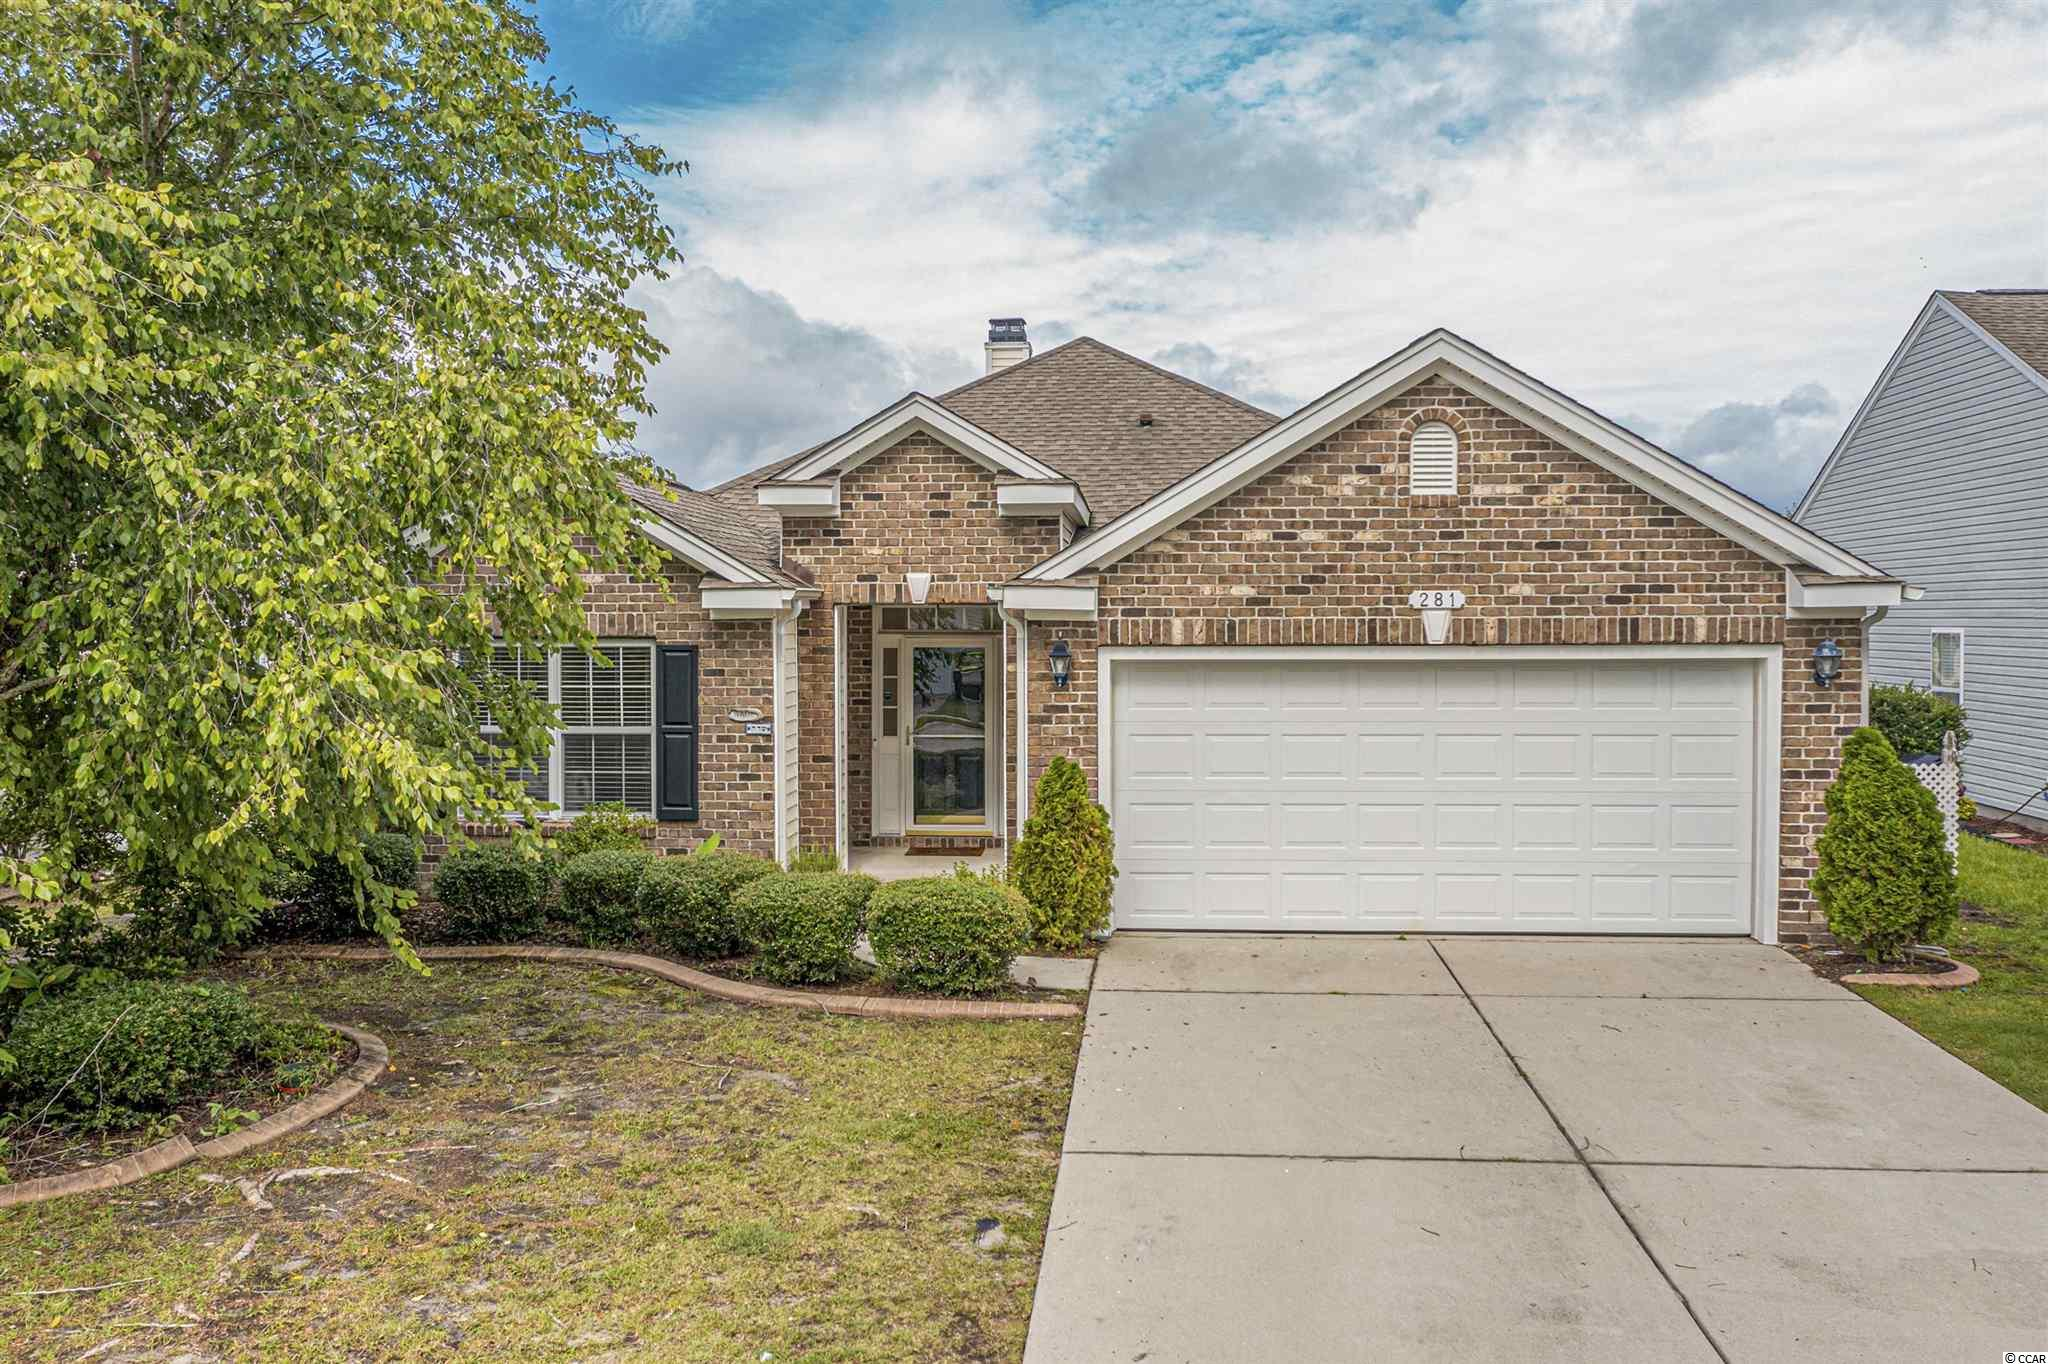 A must see, beautiful and well maintained 3 bedroom and 2 baths home located at the desirable community of The Farm at Carolina Forest. The home offers a single level open floor plan concept. The common area includes a welcoming foyer,  a large living room, a formal dining room and a breakfast nook. The specious kitchen offers plenty of cabinets and great counter space, a pantry, granite counter tops, custom backsplash, wine cooler, and would be perfect for cooking and entertaining. The elegant master bedroom offers tray ceilings, a large walk-in closet, a specious master bathroom with a custom tiled shower and a double sink vanity. Enjoy the many upgrades this property offers:  beautiful LVP flooring, fireplace, crown molding, an extra large screened-in back porch, new water heater (8/13/21) and more. The split floor plan allows for privacy and is great for family and guests. The amazing community of The Farm includes a fully furnished clubhouse with a fully equipped kitchen, a basketball court, a play ground, and a luxurious community pool area and an additional pool on a second location within the community.